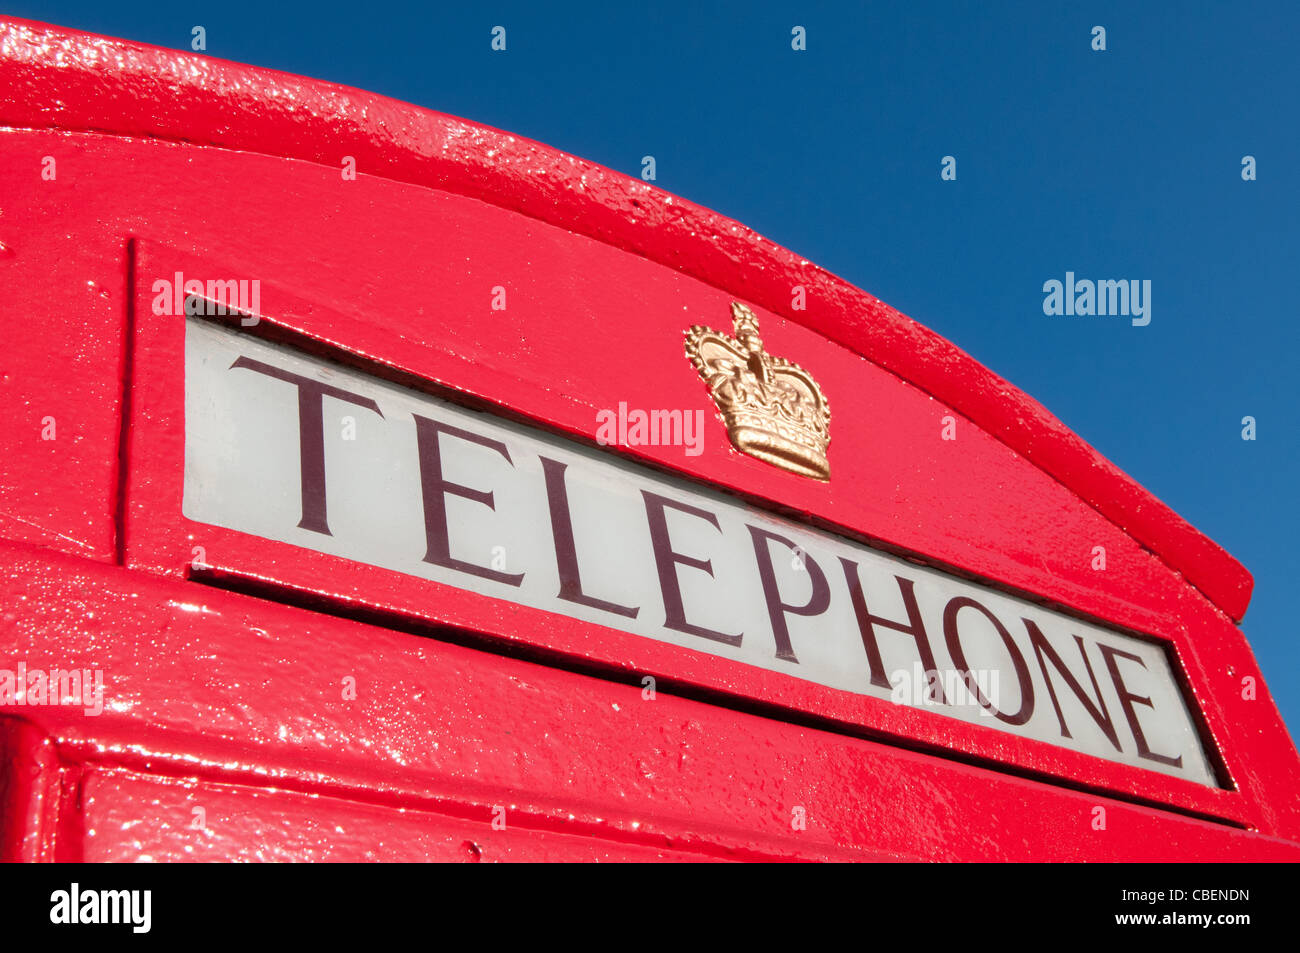 Red Telephone Box Detail and Blue Sky, London, England, UK - Stock Image